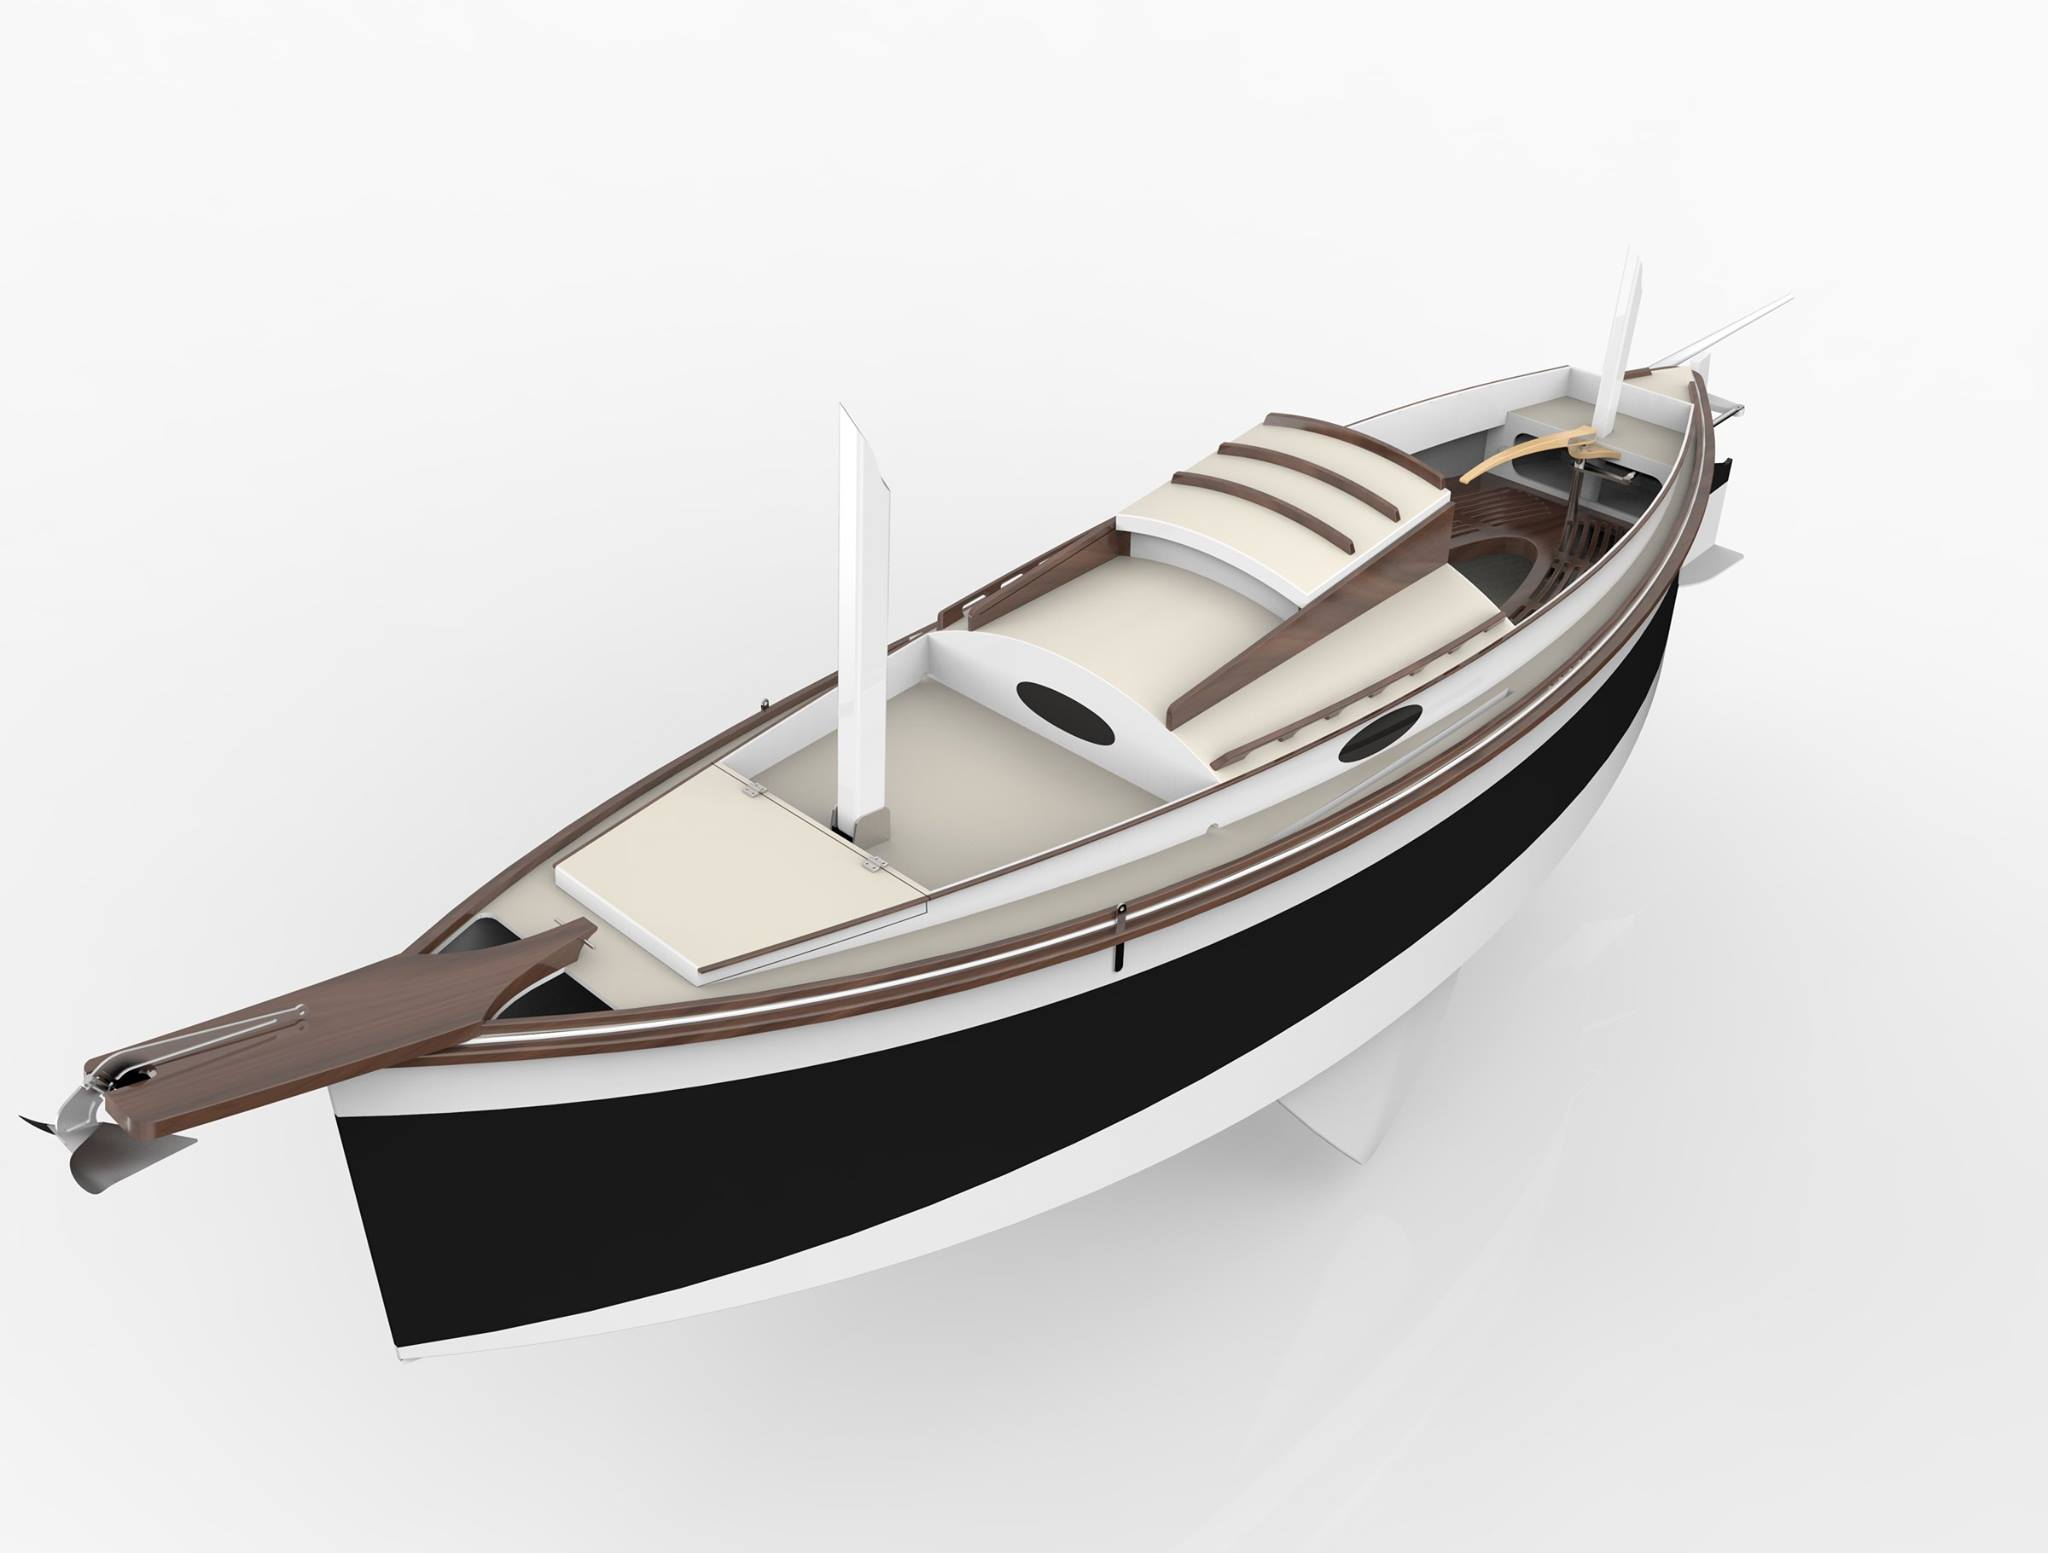 Yawl Boat Plans   Free Boat Plans TOP